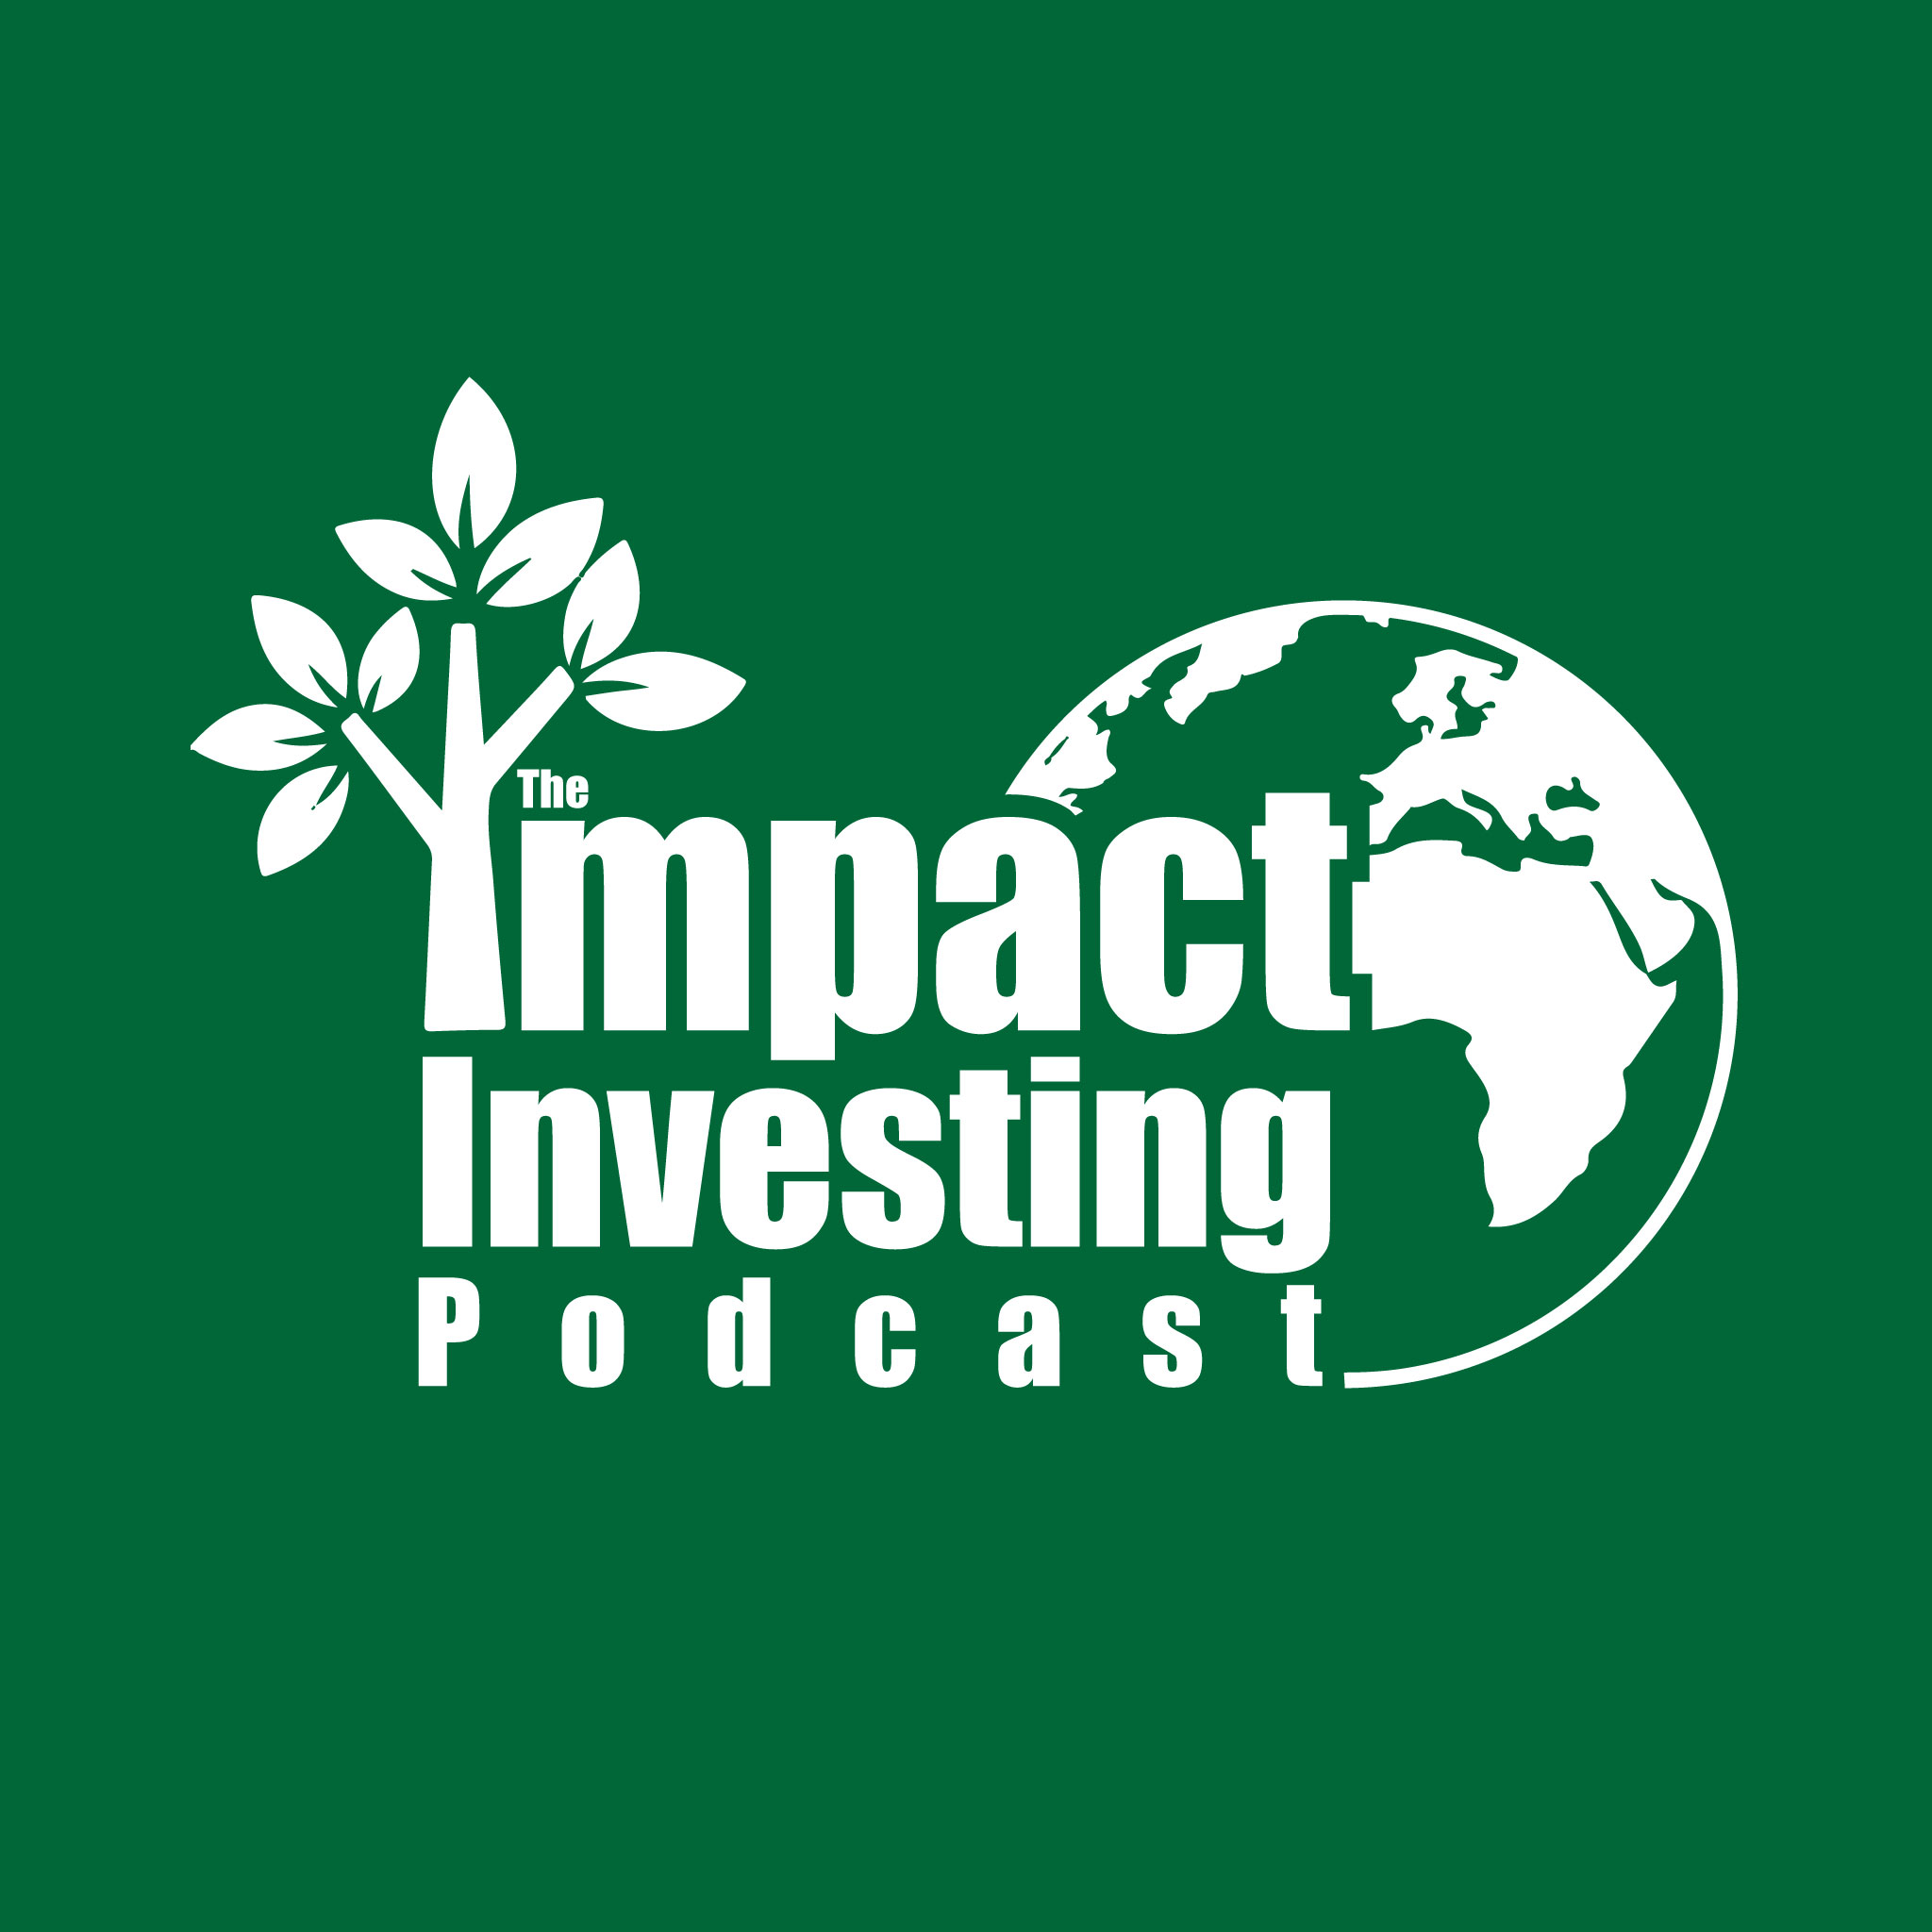 Artwork for IIP 009 - Will Morgan: The Impact of Defining, Evaluating and Measuring Impact Investment Portfolios